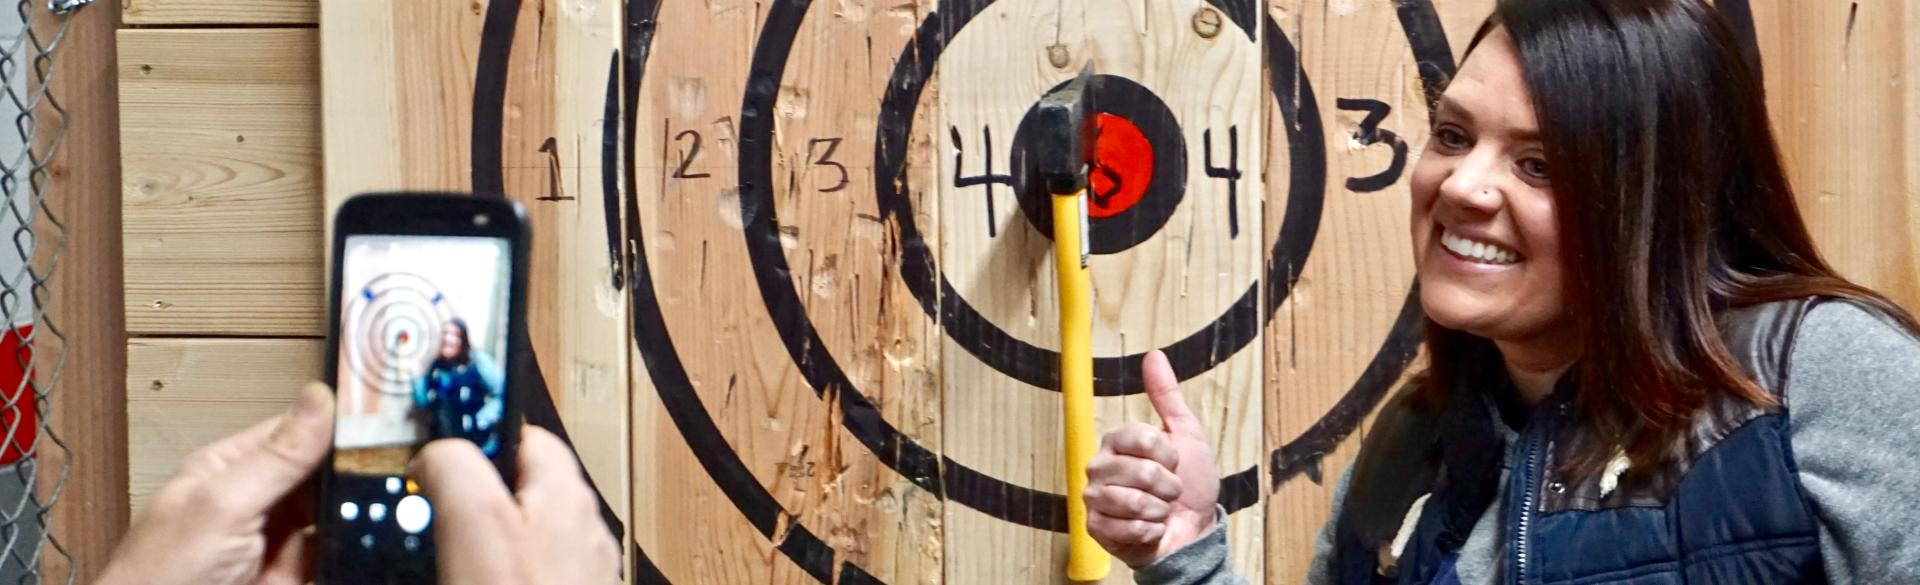 Hitting the Bullseye at Target Axe Throwing